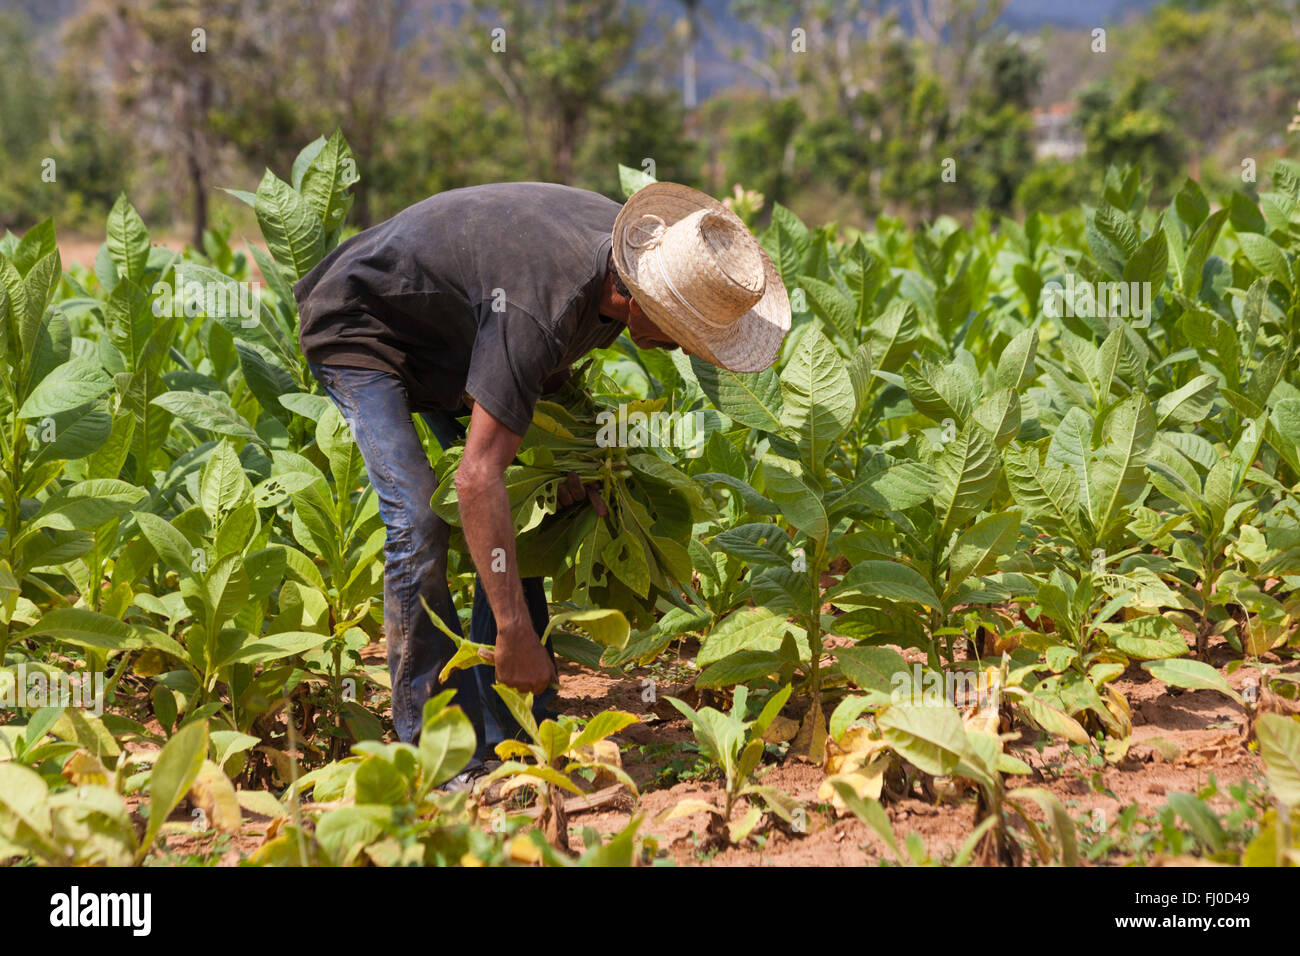 Daily life in Cuba - Hanging tobacco leaves out to dry at Vinales, Pinar del Rio Province, Cuba, West Indies - Stock Image